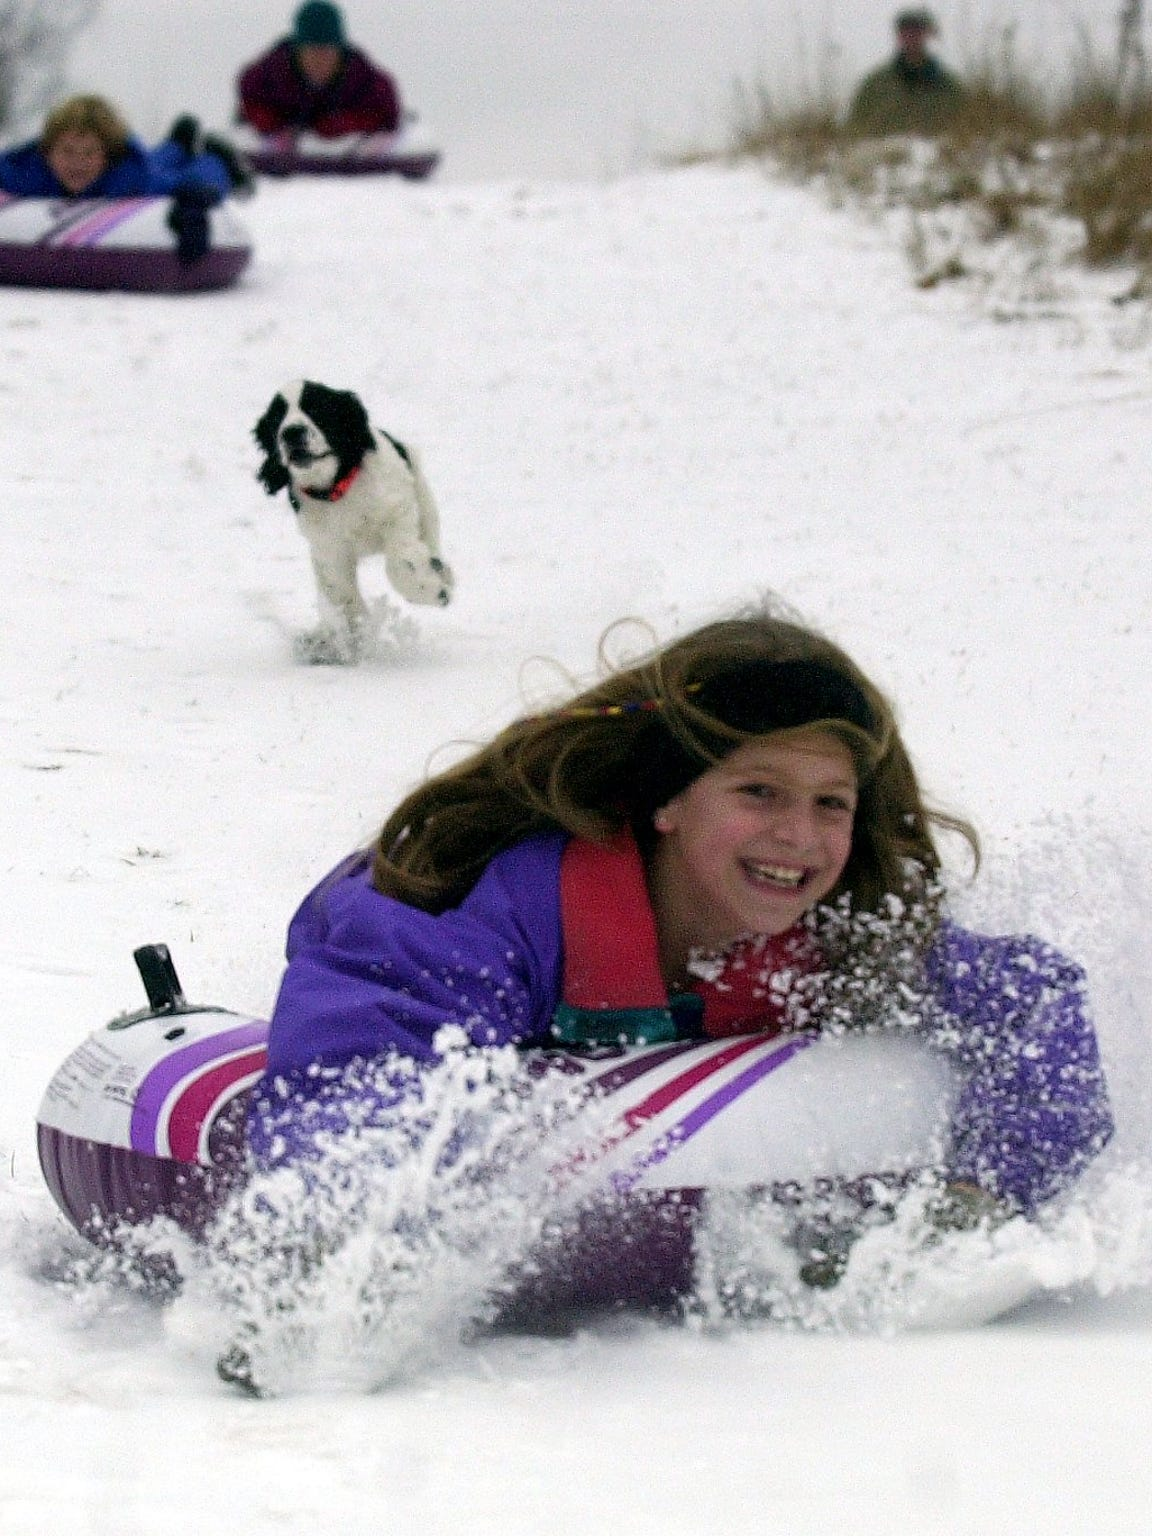 In this 2002 file photo, Sarah Martin, of Wausau, zooms down a hill near Sylvan Hill park as Damon Cronce's dog, Spencer, chases her while sledding with her brother Adam and her mother, Laura.